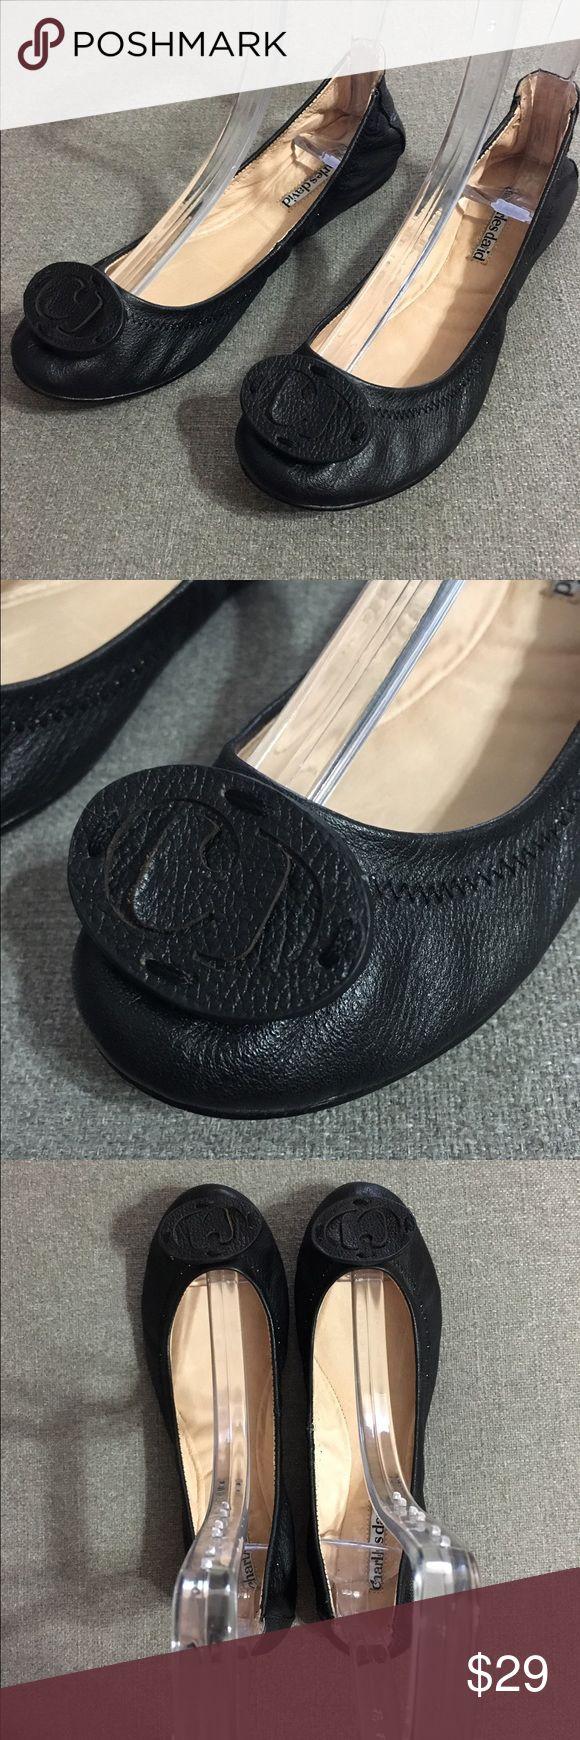 Charles David Ballet Flats Charles David leather ballet flats with rounded toe & Charles David logo on top of the toe. In great condition! Charles David Shoes Flats & Loafers